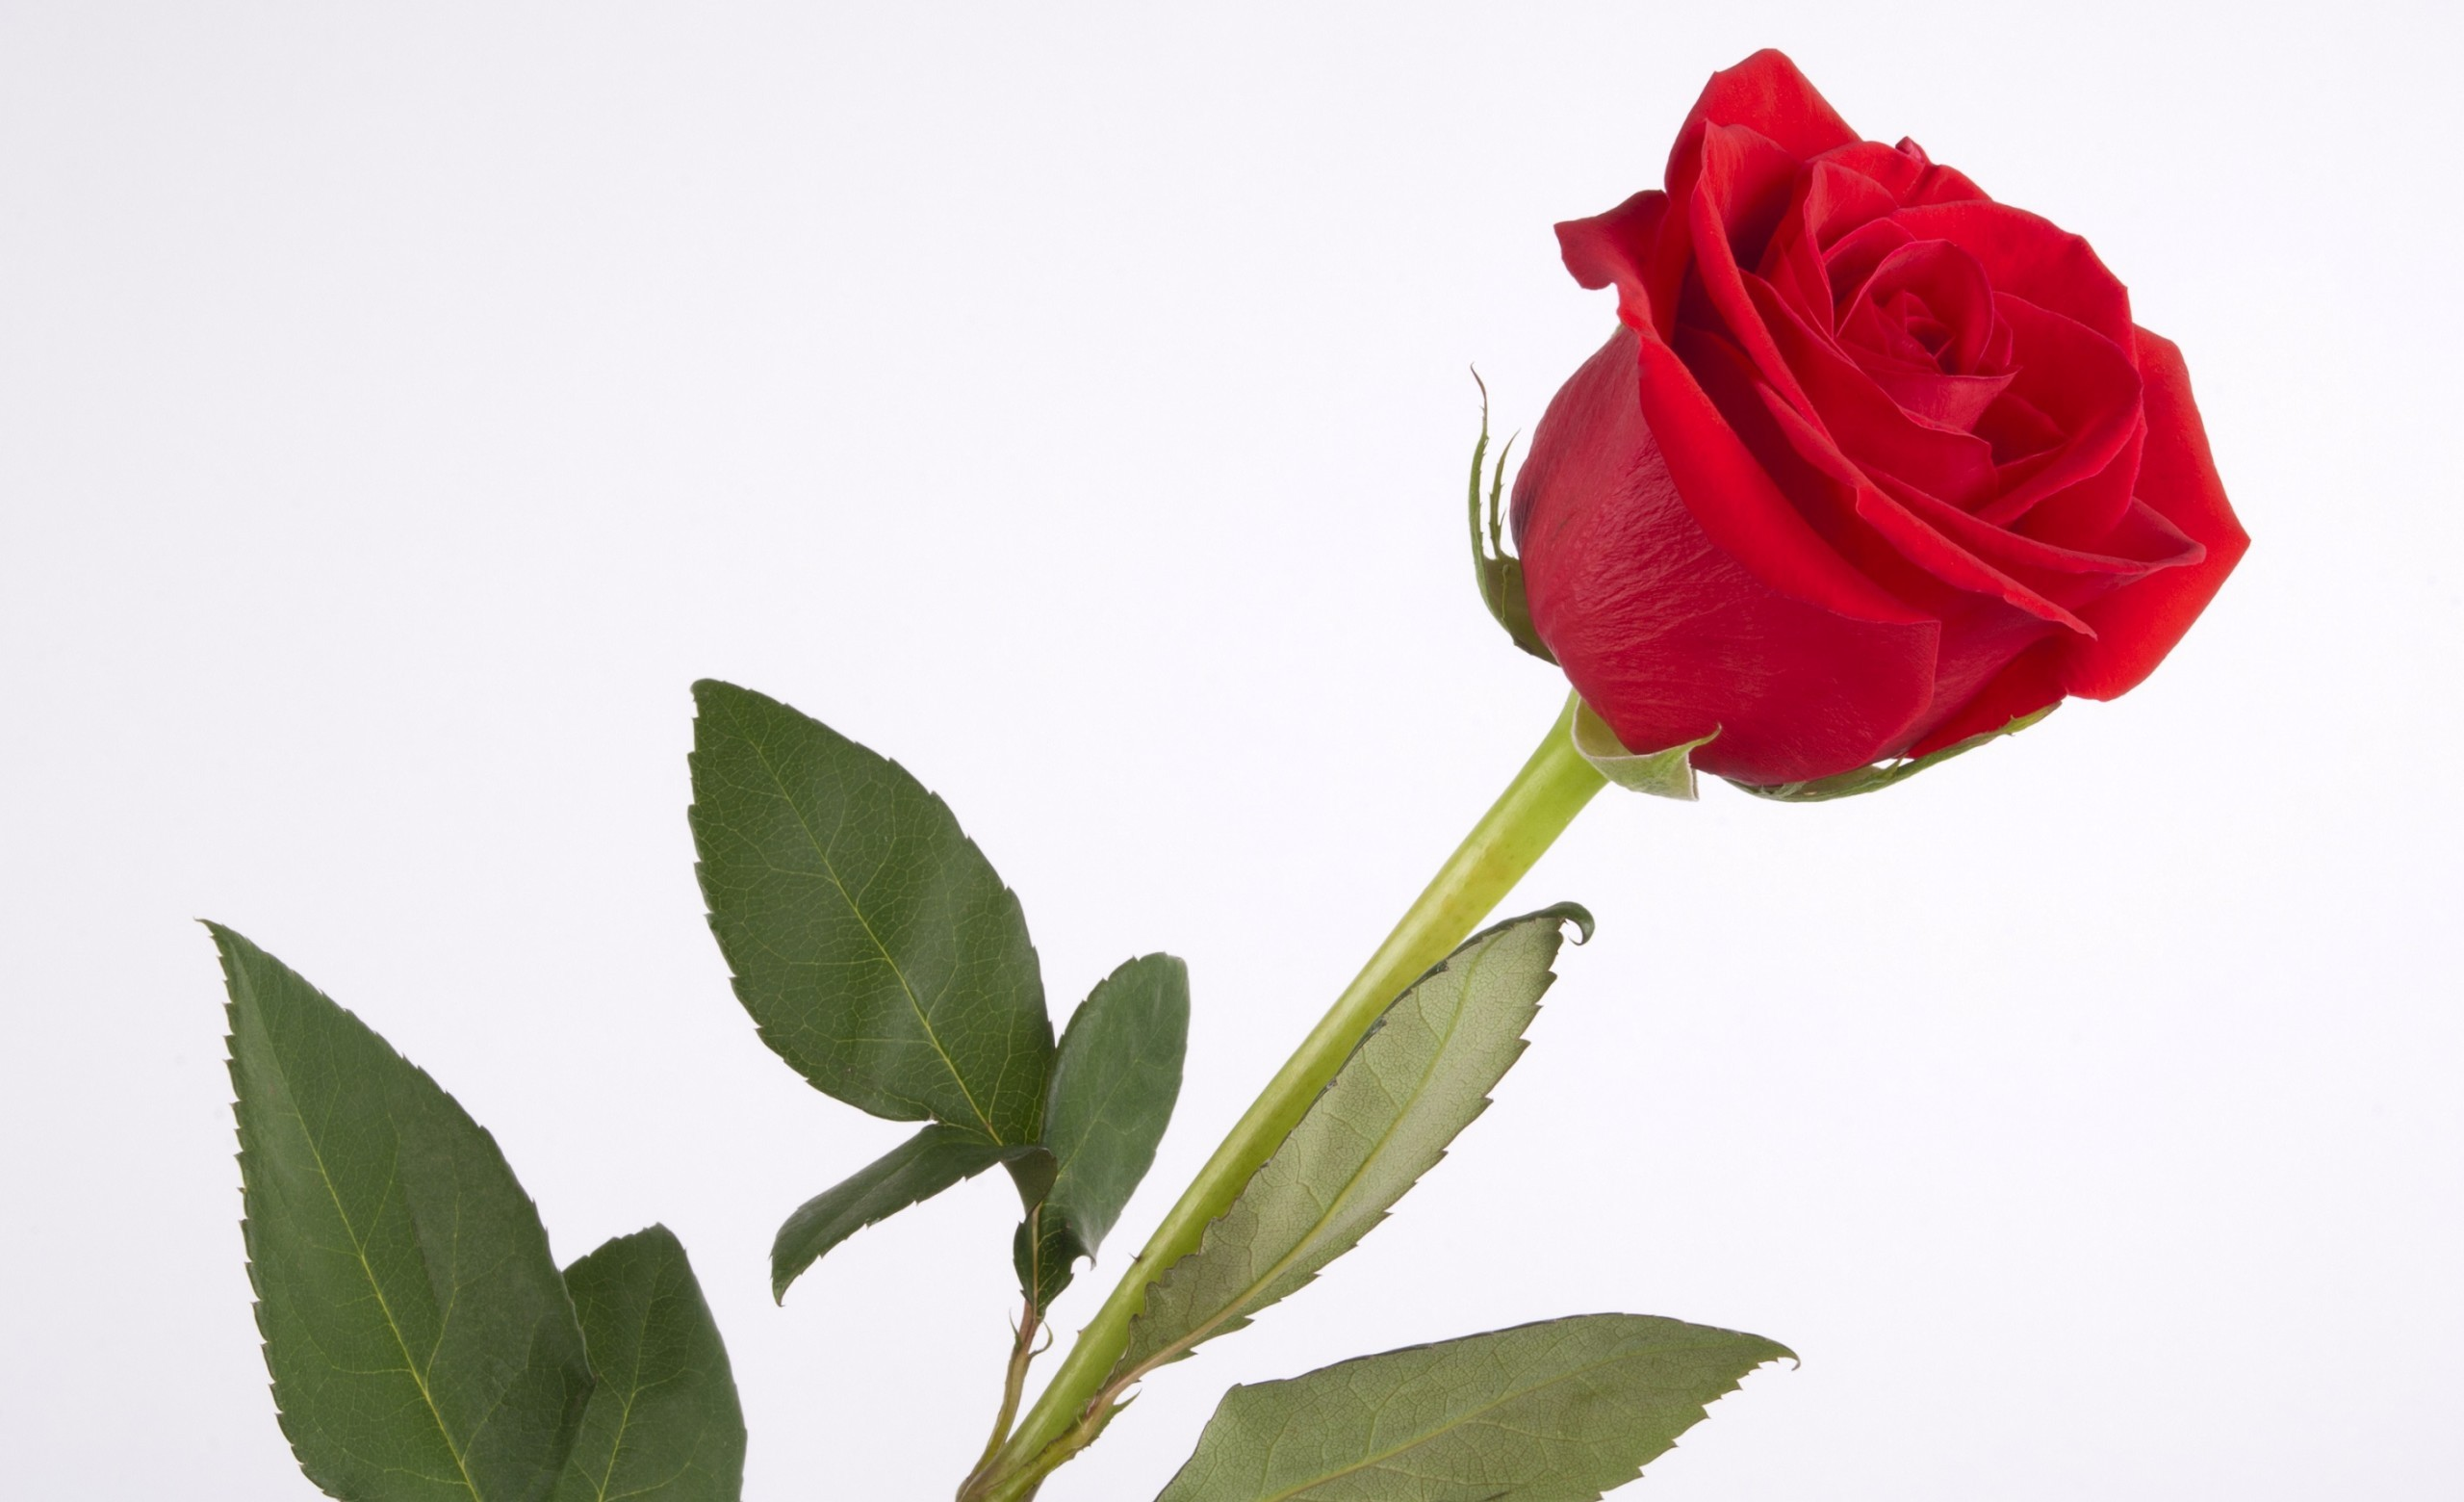 red rose background hd - photo #36